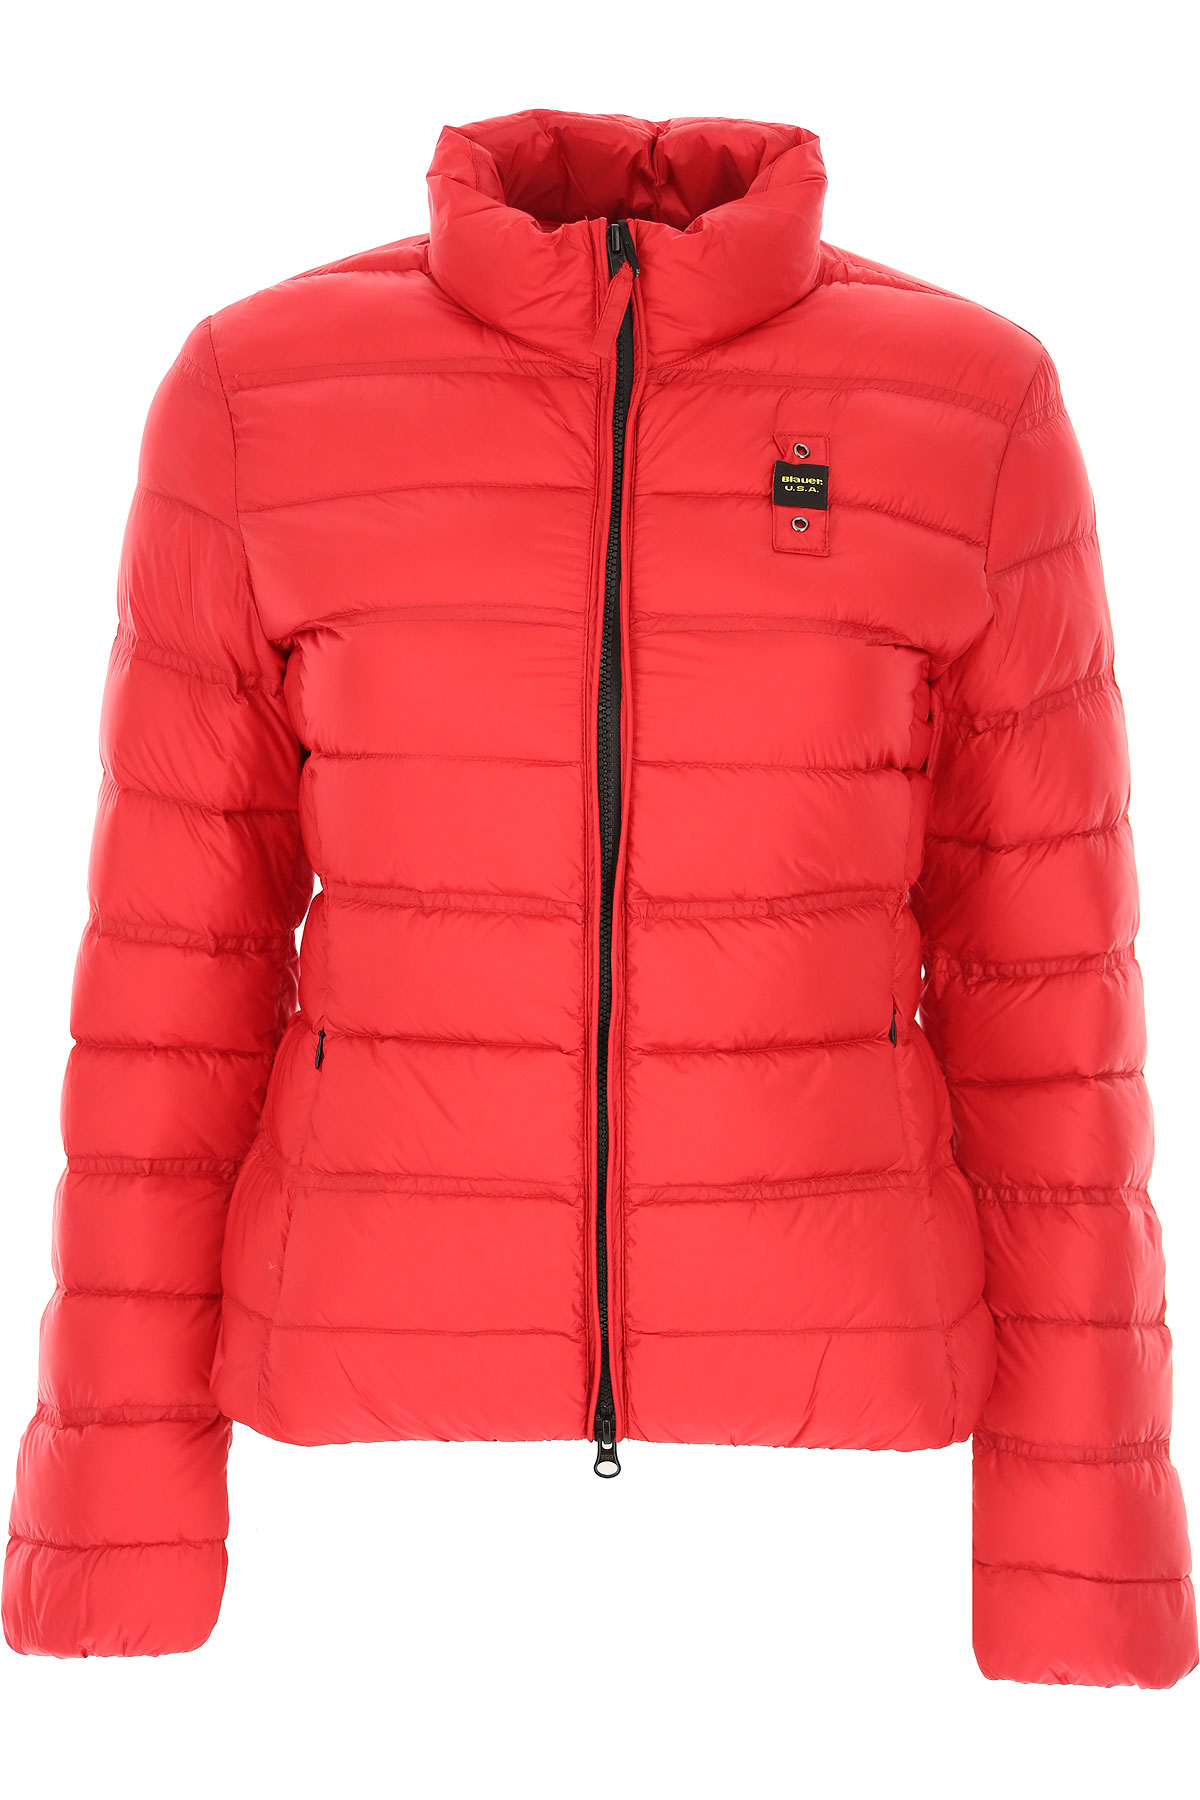 Blauer Down Jacket for Women, Puffer Ski Jacket On Sale, Strawberry Red, polyester, 2019, 2 6 8